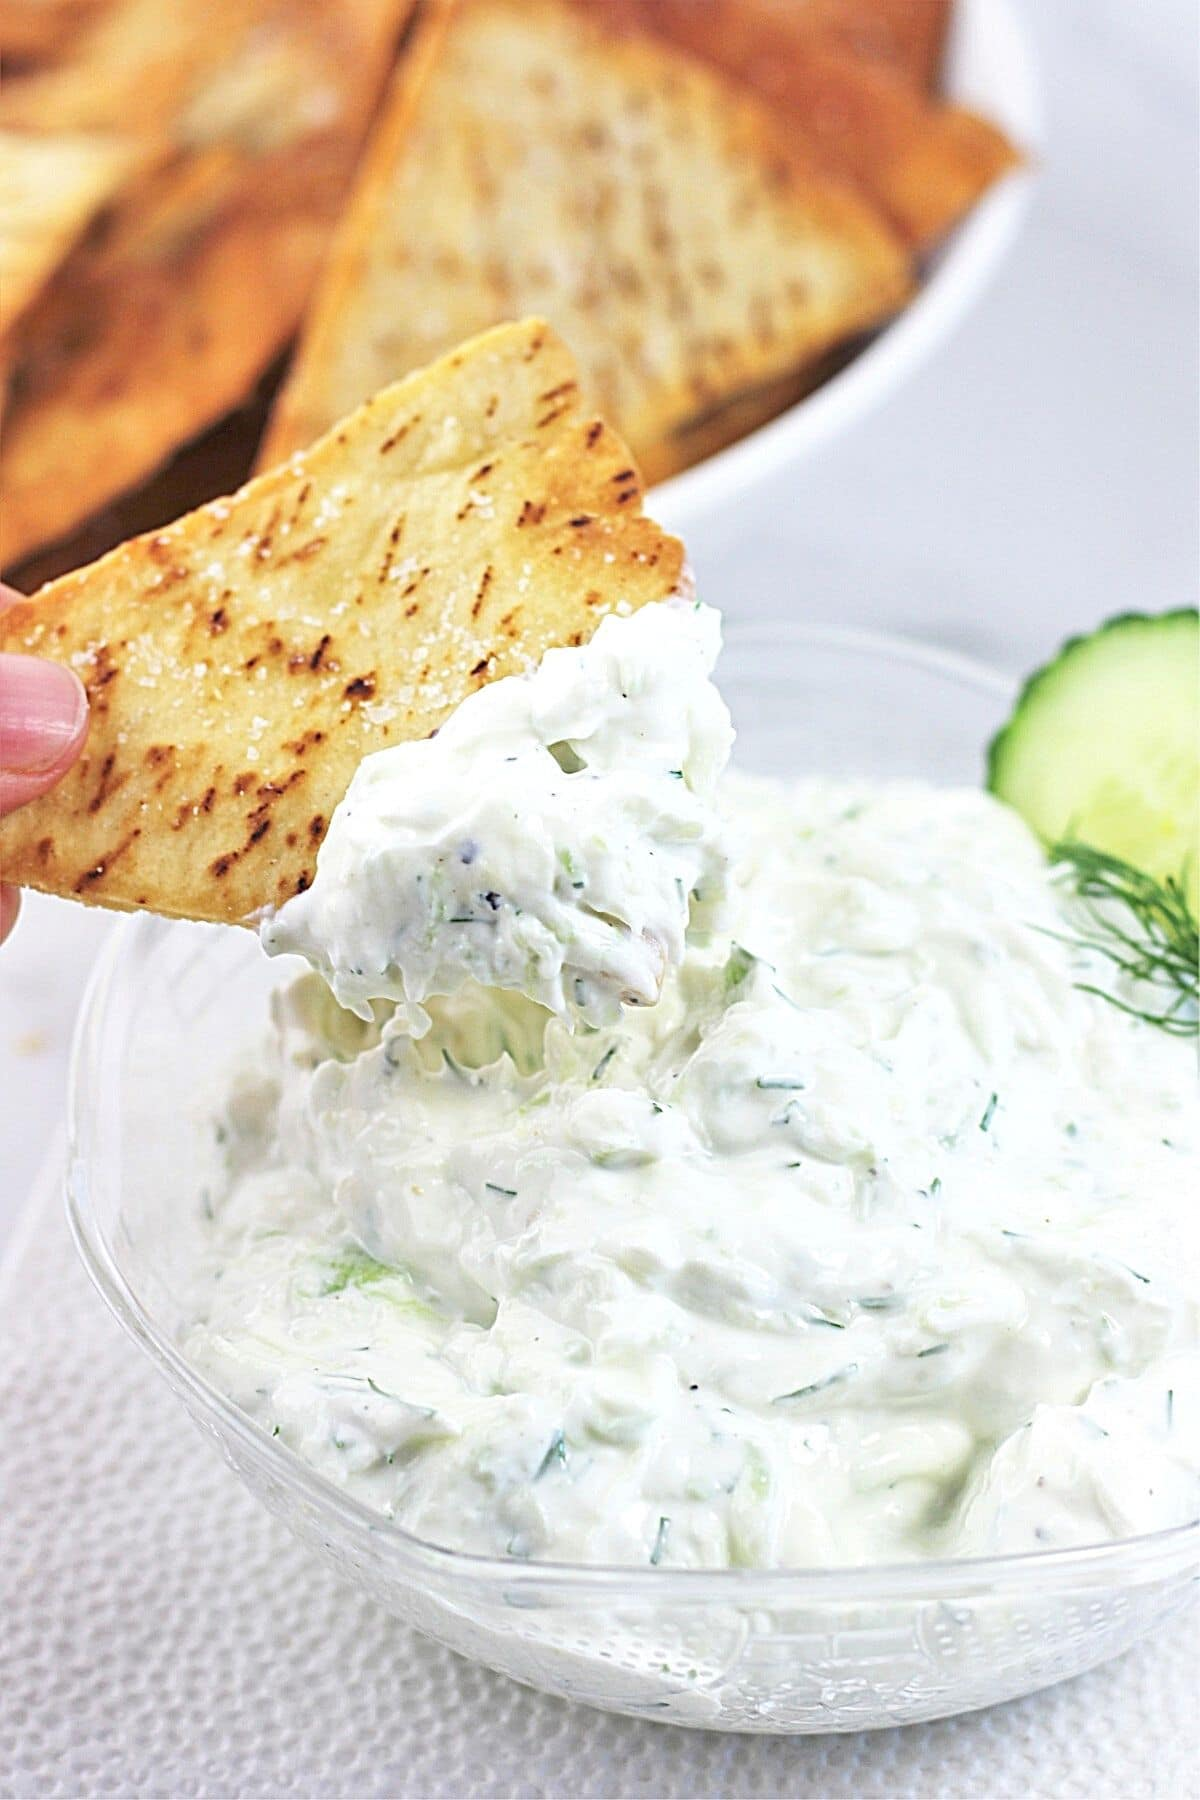 pita chip being dipped into a bowl of homemade tzatziki dip